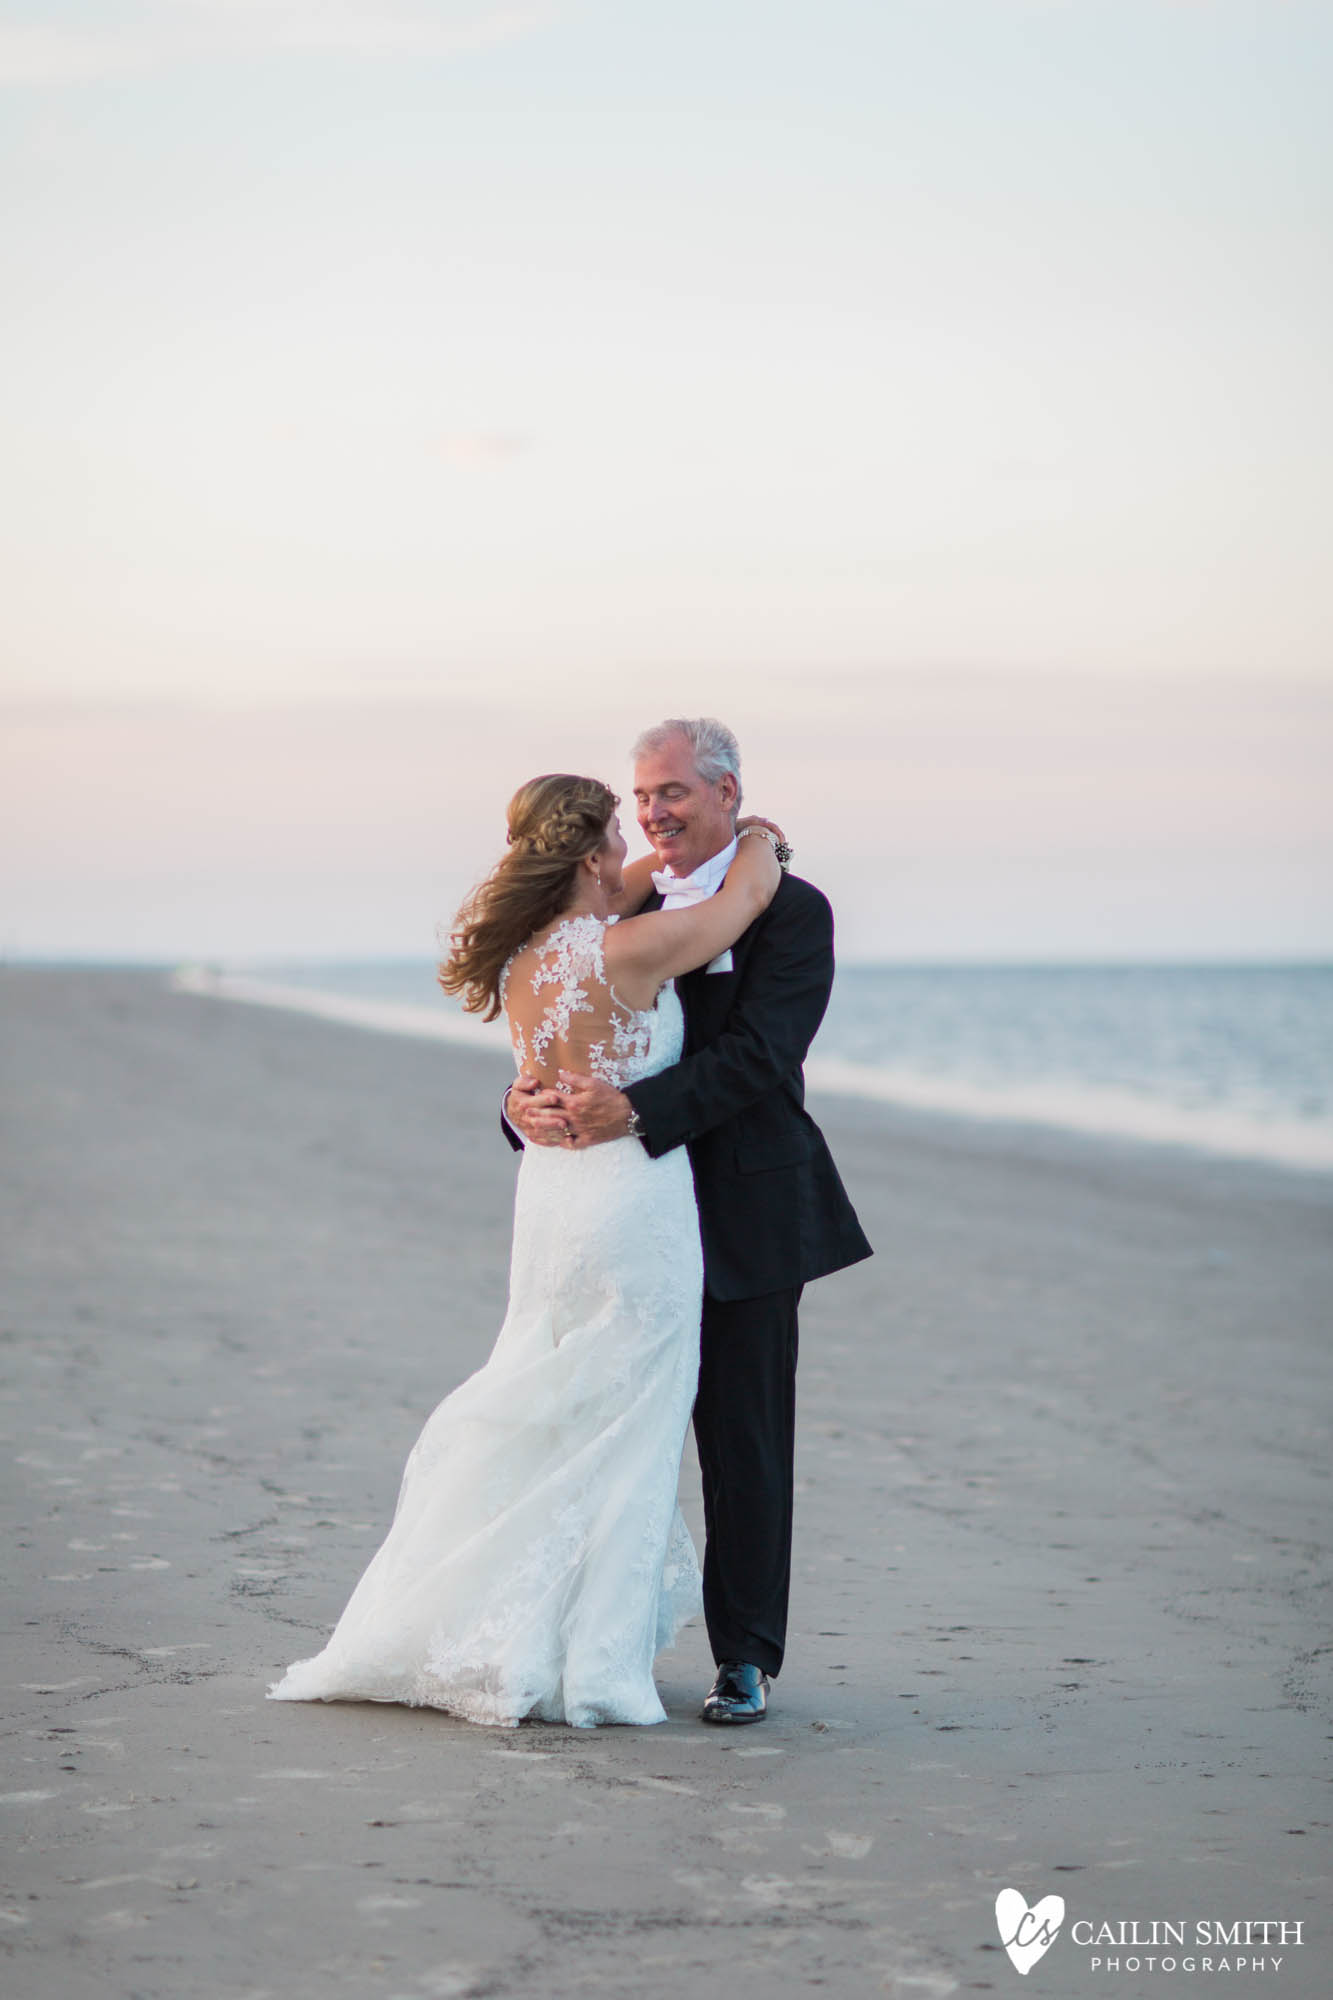 Kalina_Andy_Jekyll_Island_Westin_Hotel_Wedding_Photography_0051.jpg